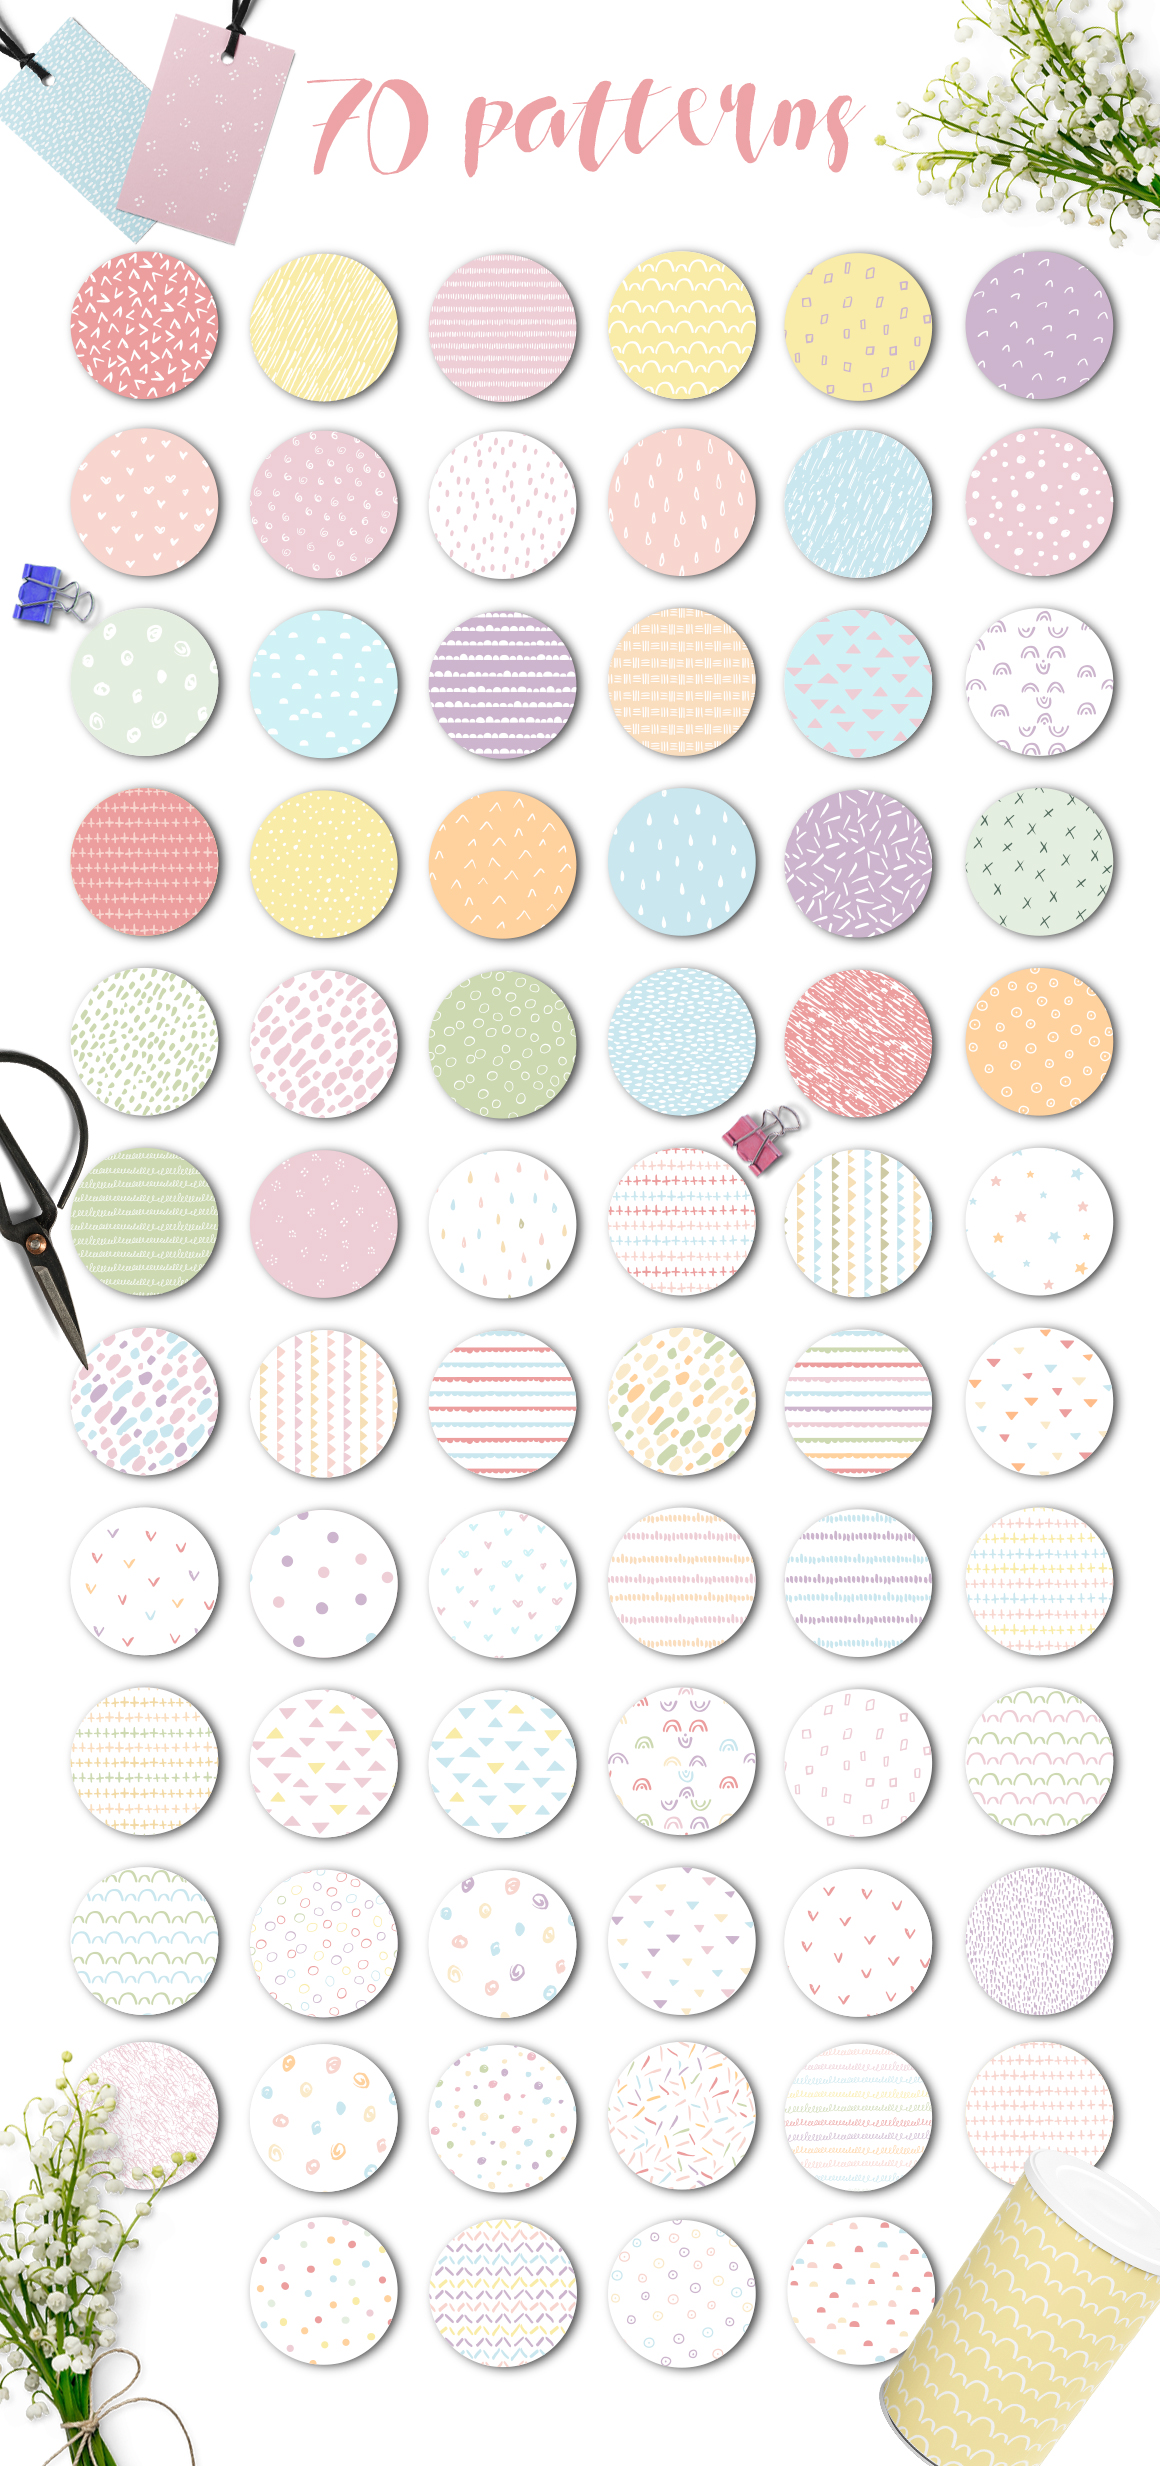 Funny Hand Drawn Patterns